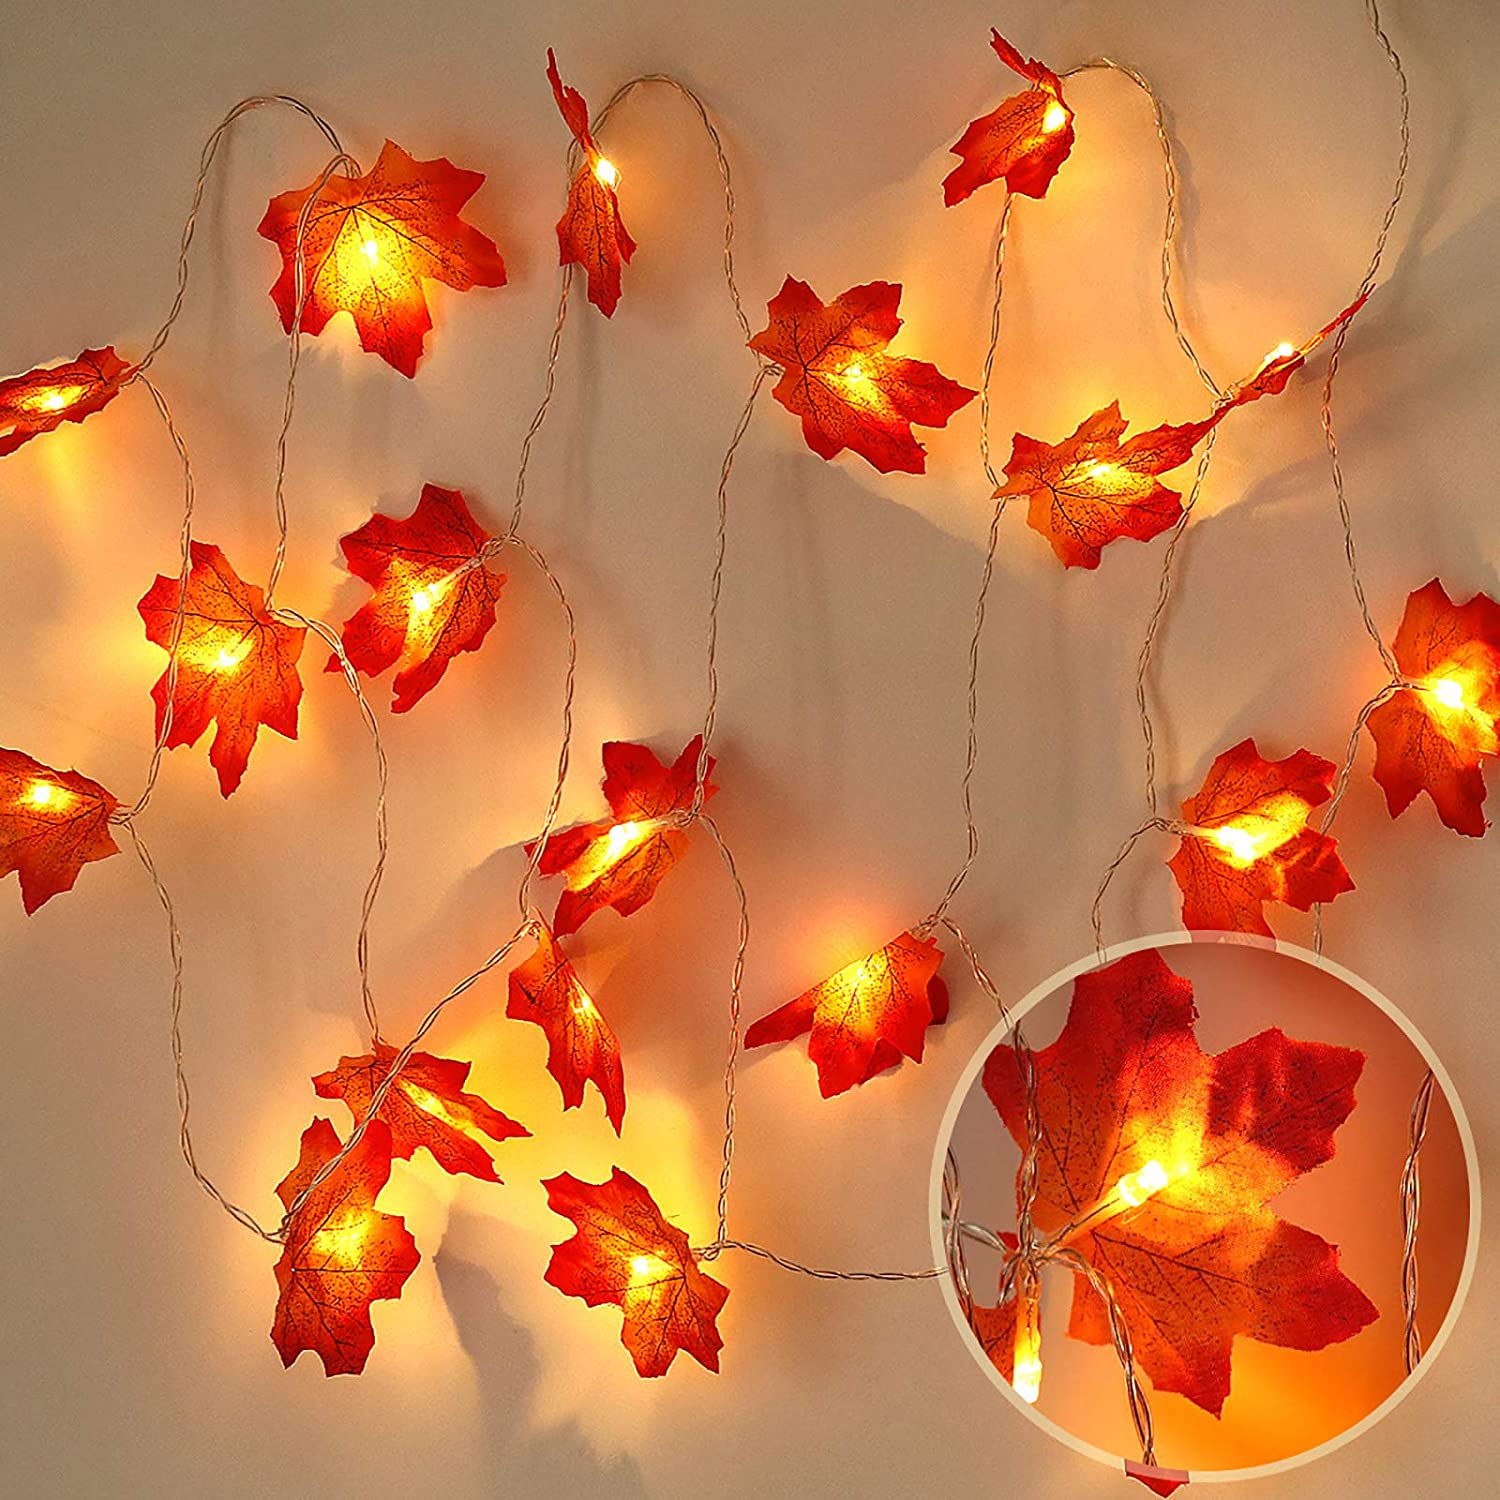 RECUTMS Thanksgiving Decorations Lighted Fall Garland, 9.8 Feet 20 LED Thanksgiving Christmas Decor Maple Leaves String Lights, Thanksgiving Gift Fall Decor for Home Holiday Autumn Garland Indoor